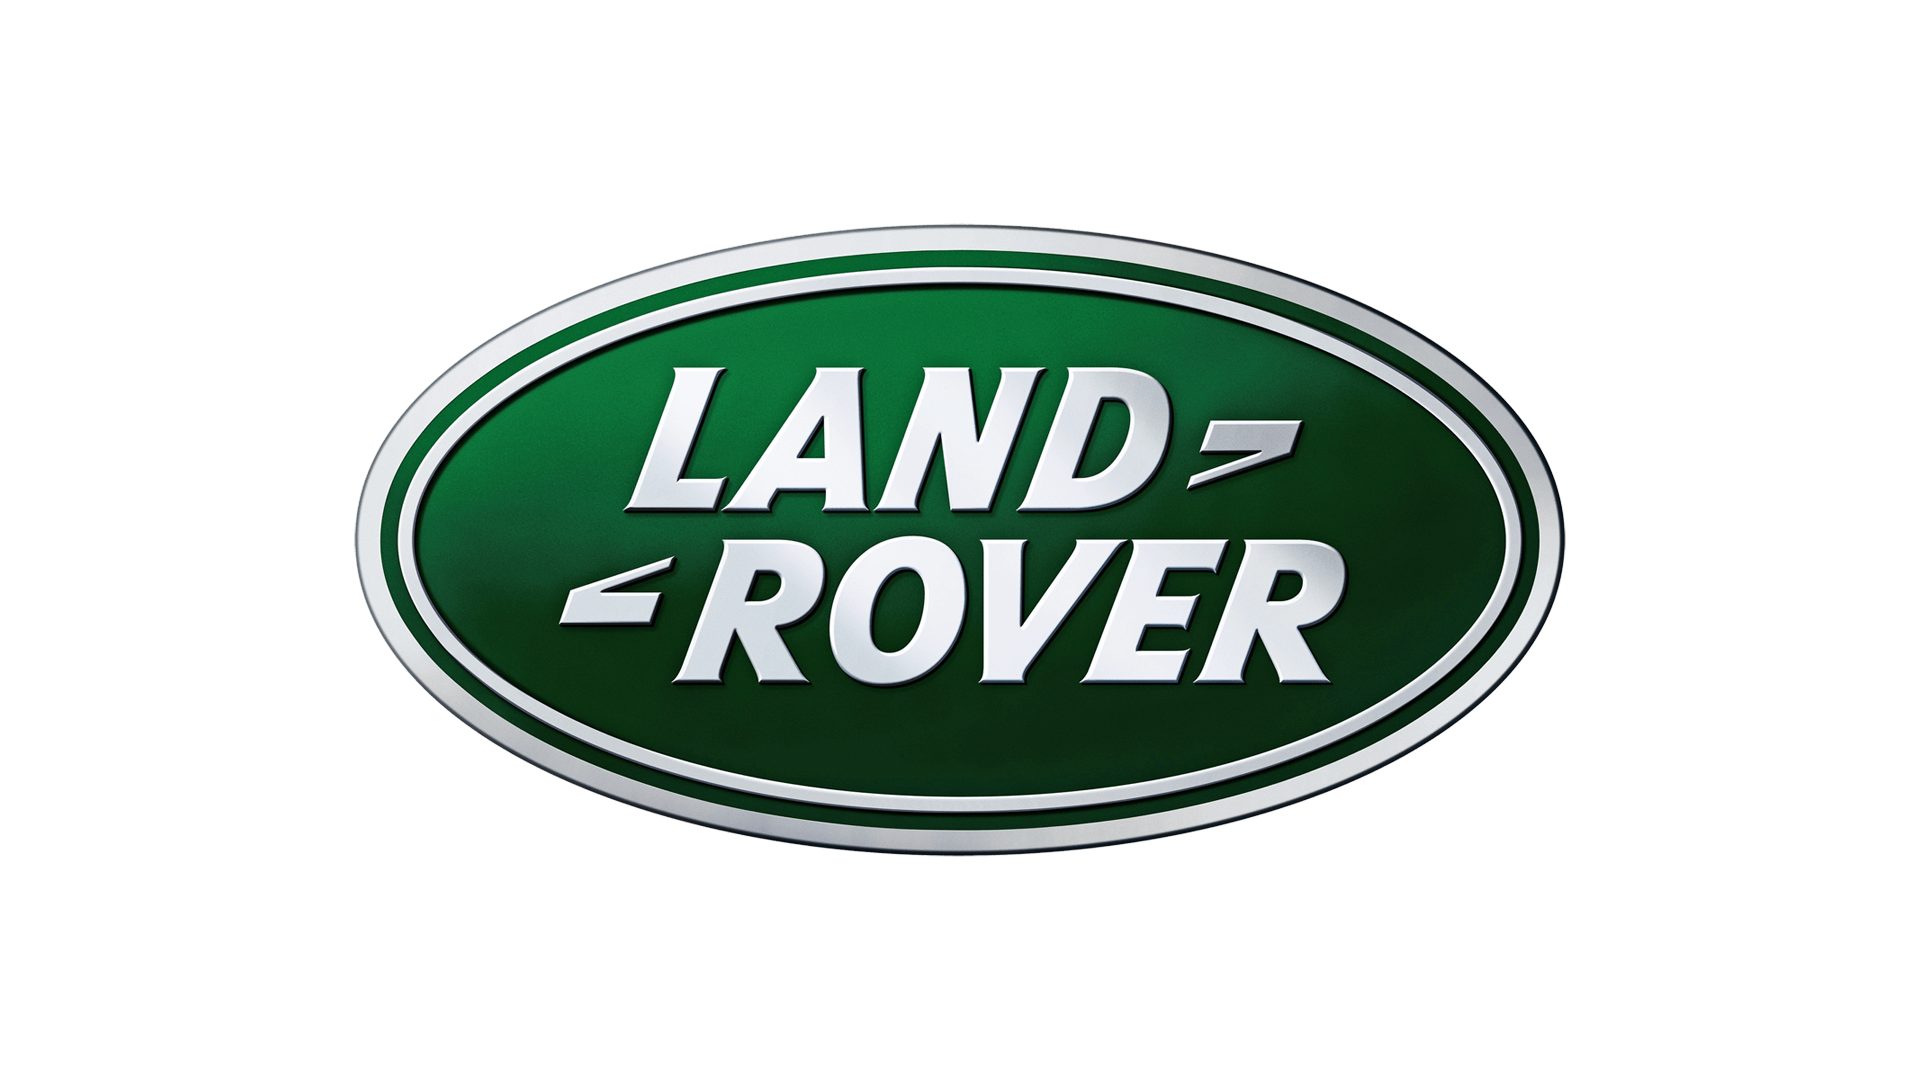 http://rpmautolease.com/wp-content/uploads/2017/08/Land-Rover-logo-2011-1920x1080.png